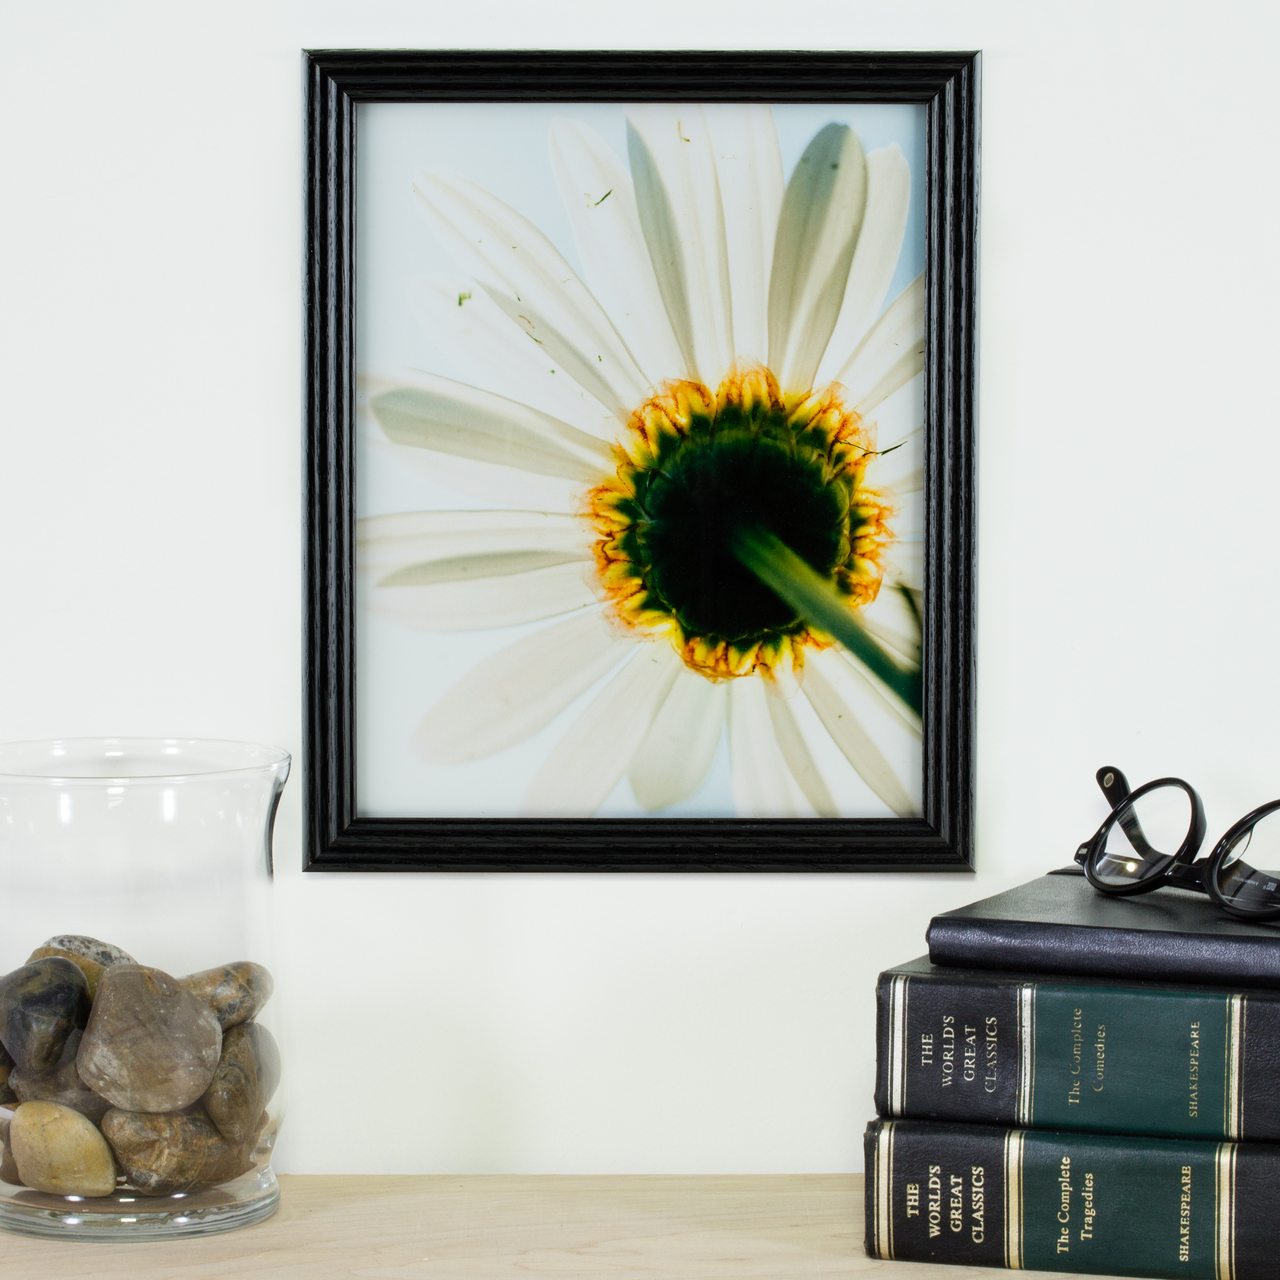 A simple hardwood picture frame that is affordable.